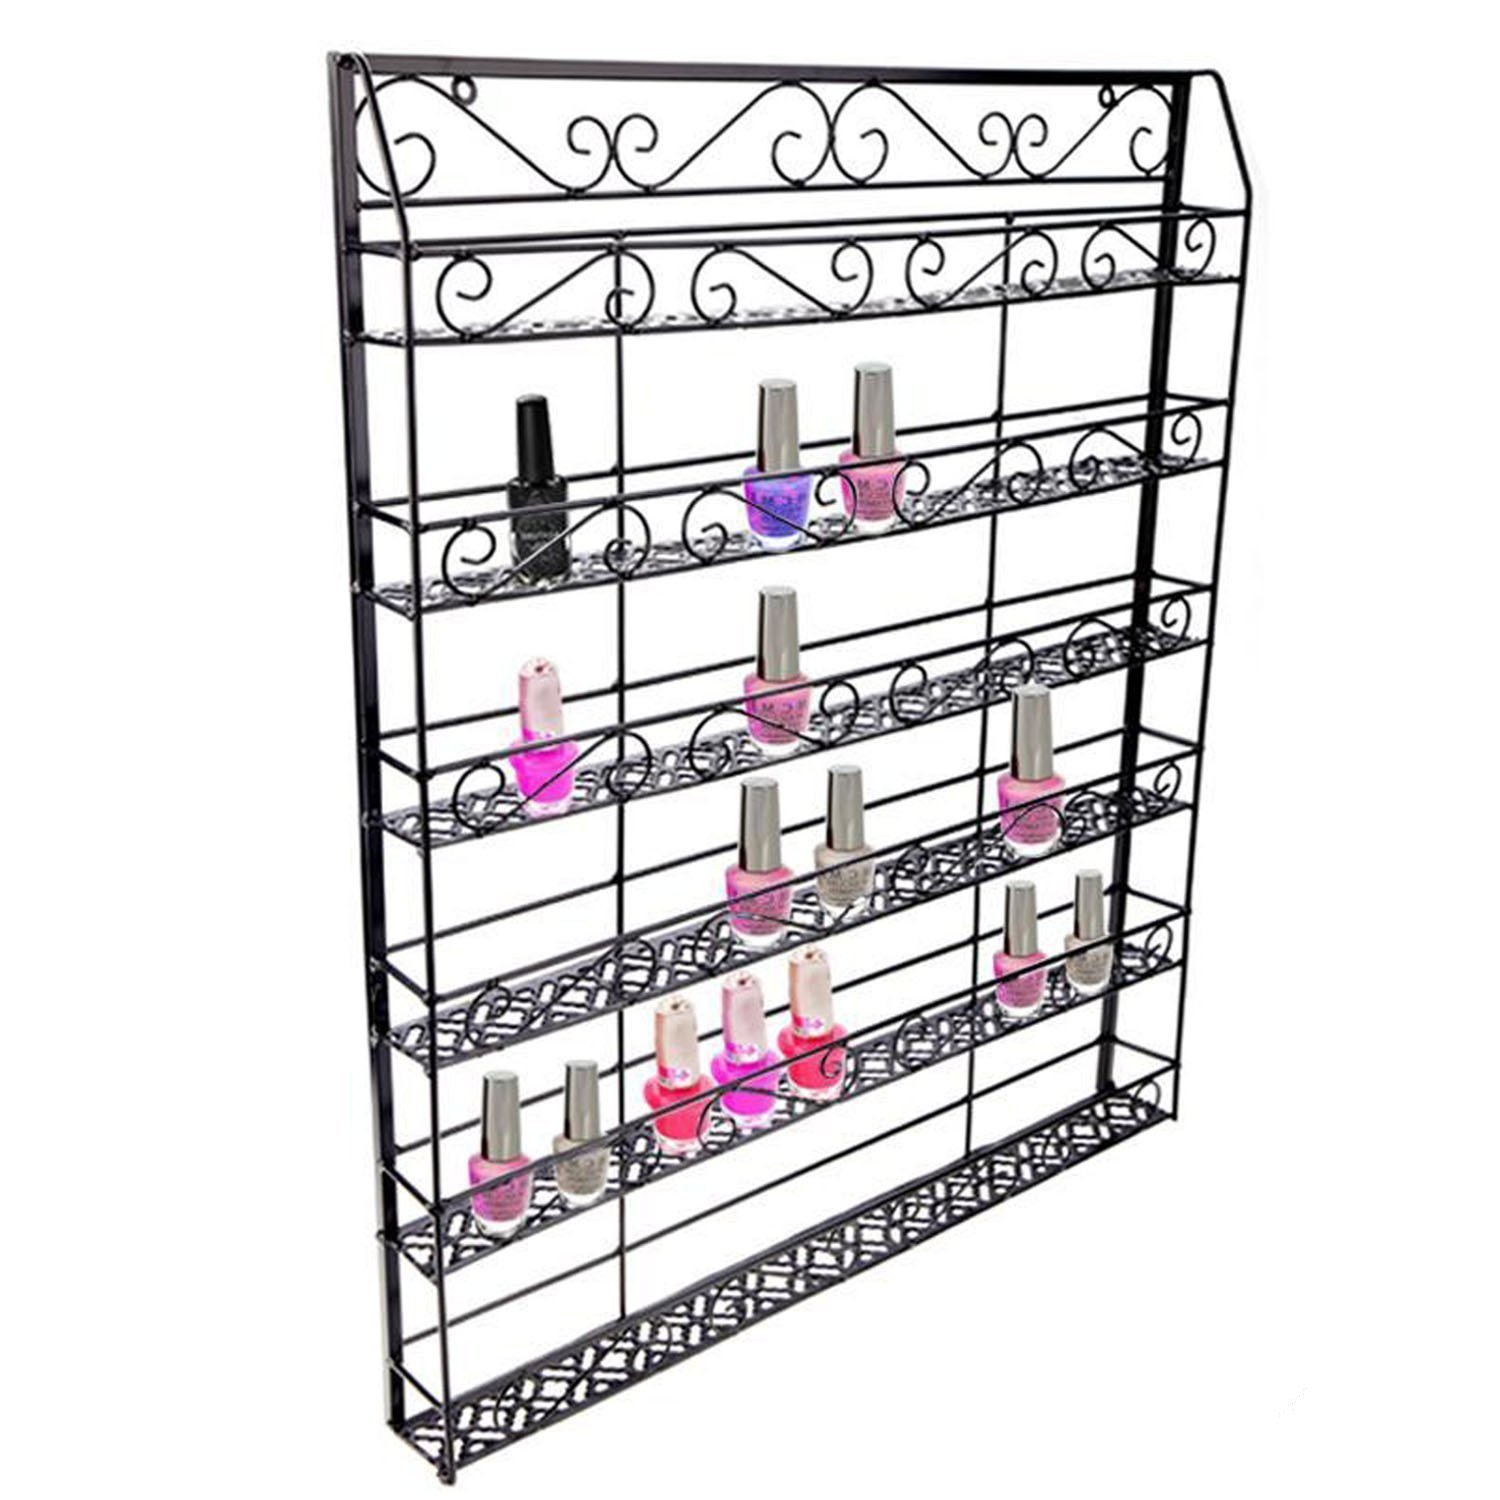 Pesters 6-Tier Wall Mounted Nail Polish Rack Organizer, Black Metal 120 Bottles Nail Polish Shelf Display Rack Holder for Home, Business, Salon, Spa, and More (US STOCK)